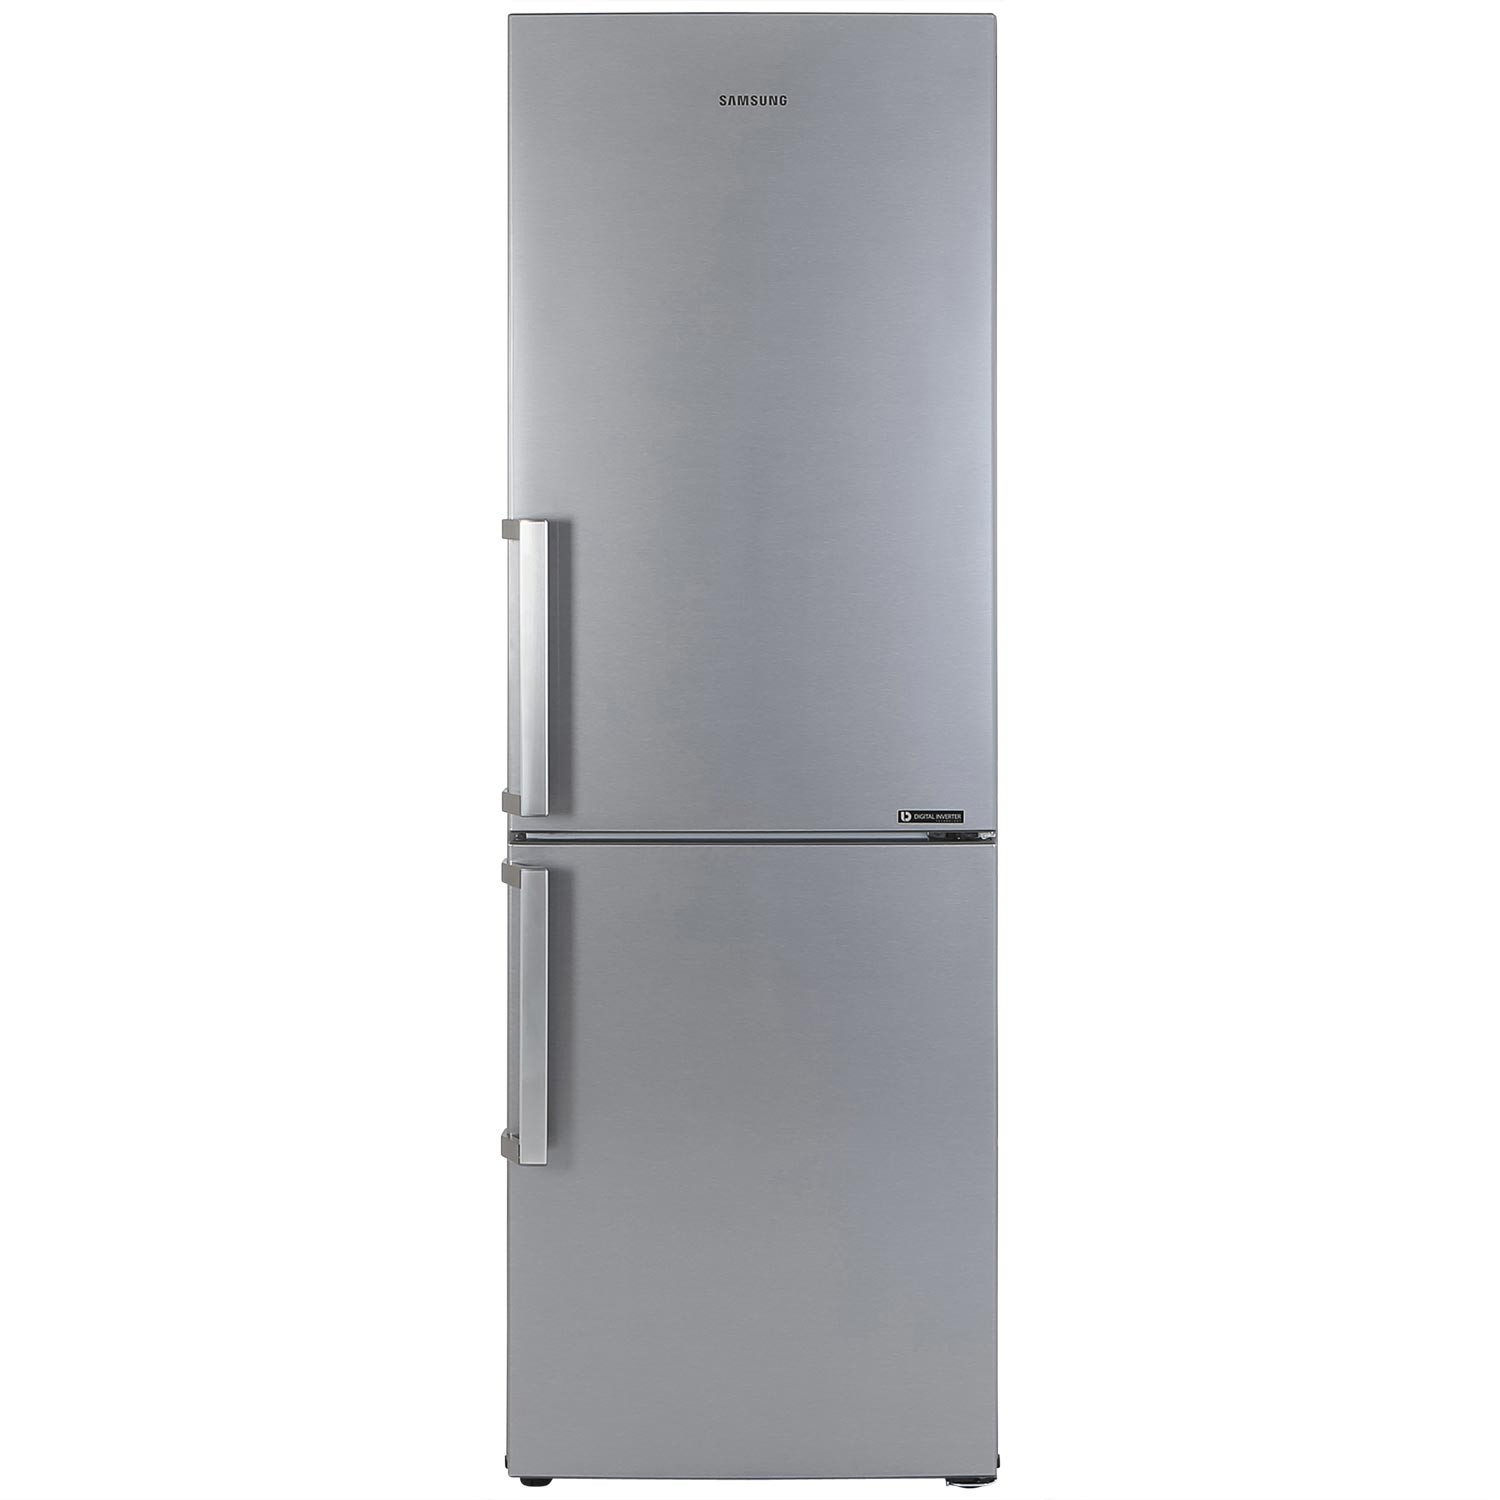 No Frost Samsung No Frost Fridge Freezer S D Ireland